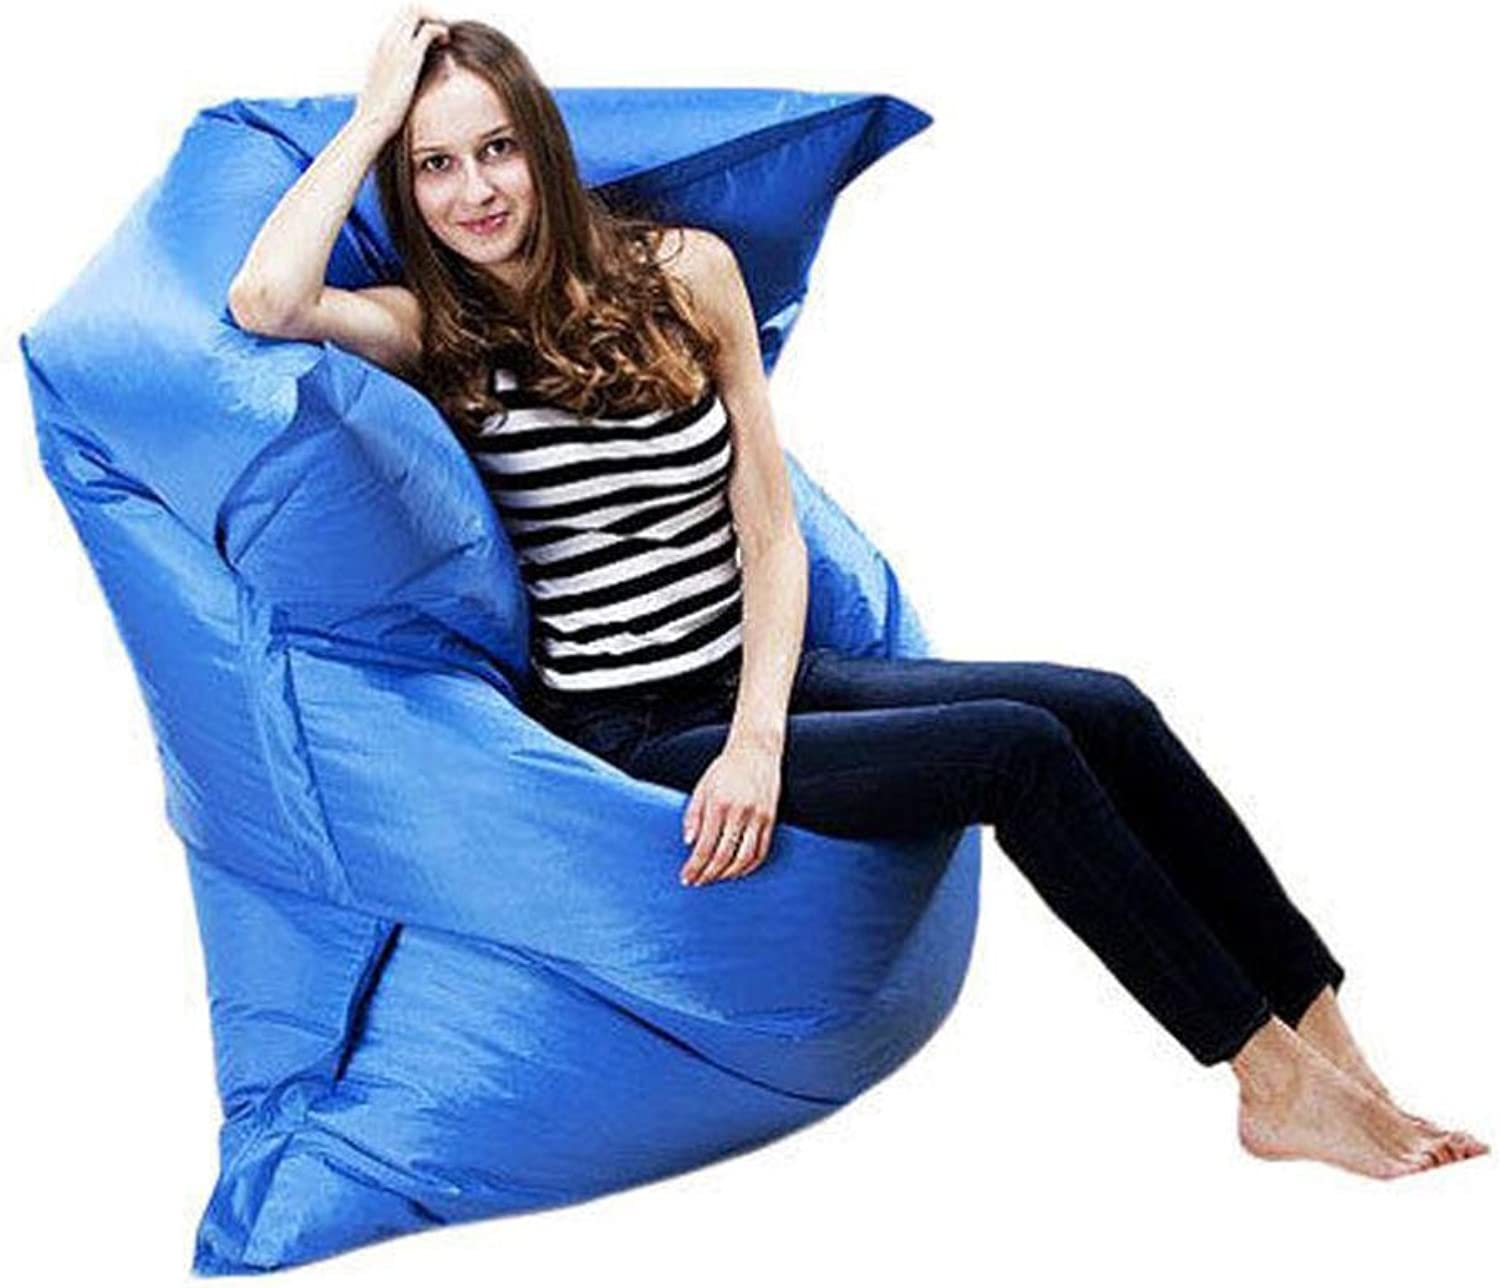 Dreamyth Giant Beanbag Cushion Pillow Indoor Outdoor Relax Gaming Gamer Bean Bag